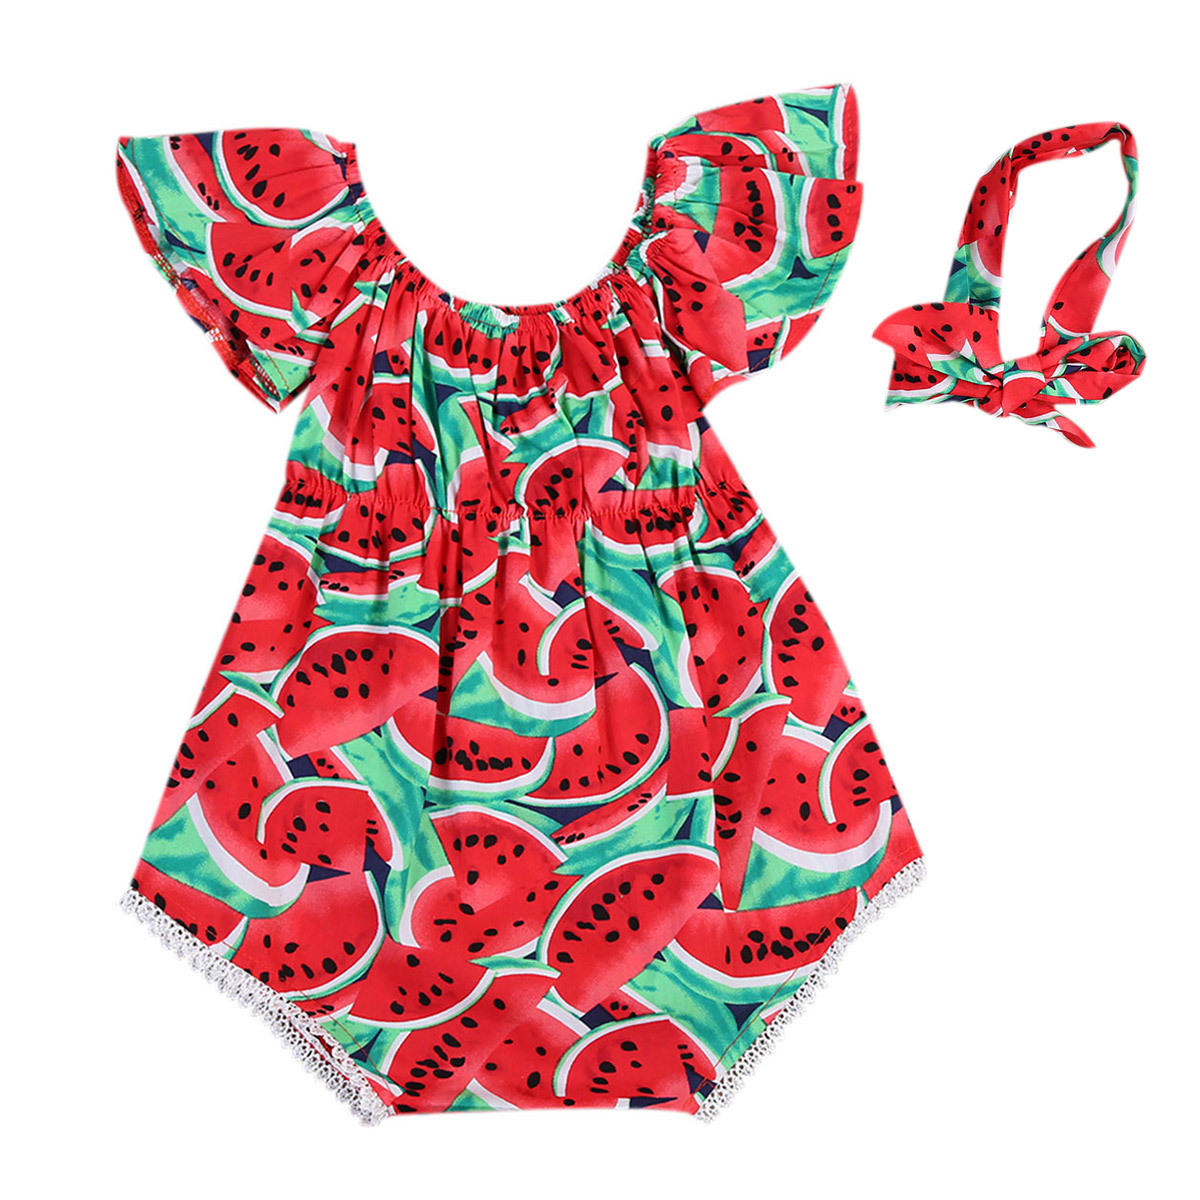 Baby Girl Summer Clothes | 2019 Baby Girl Summer Clothing Watermelon Romper Jumpsuit Headband Outfit For Kid Clothes Toddler Children Newborn Baby Clothes